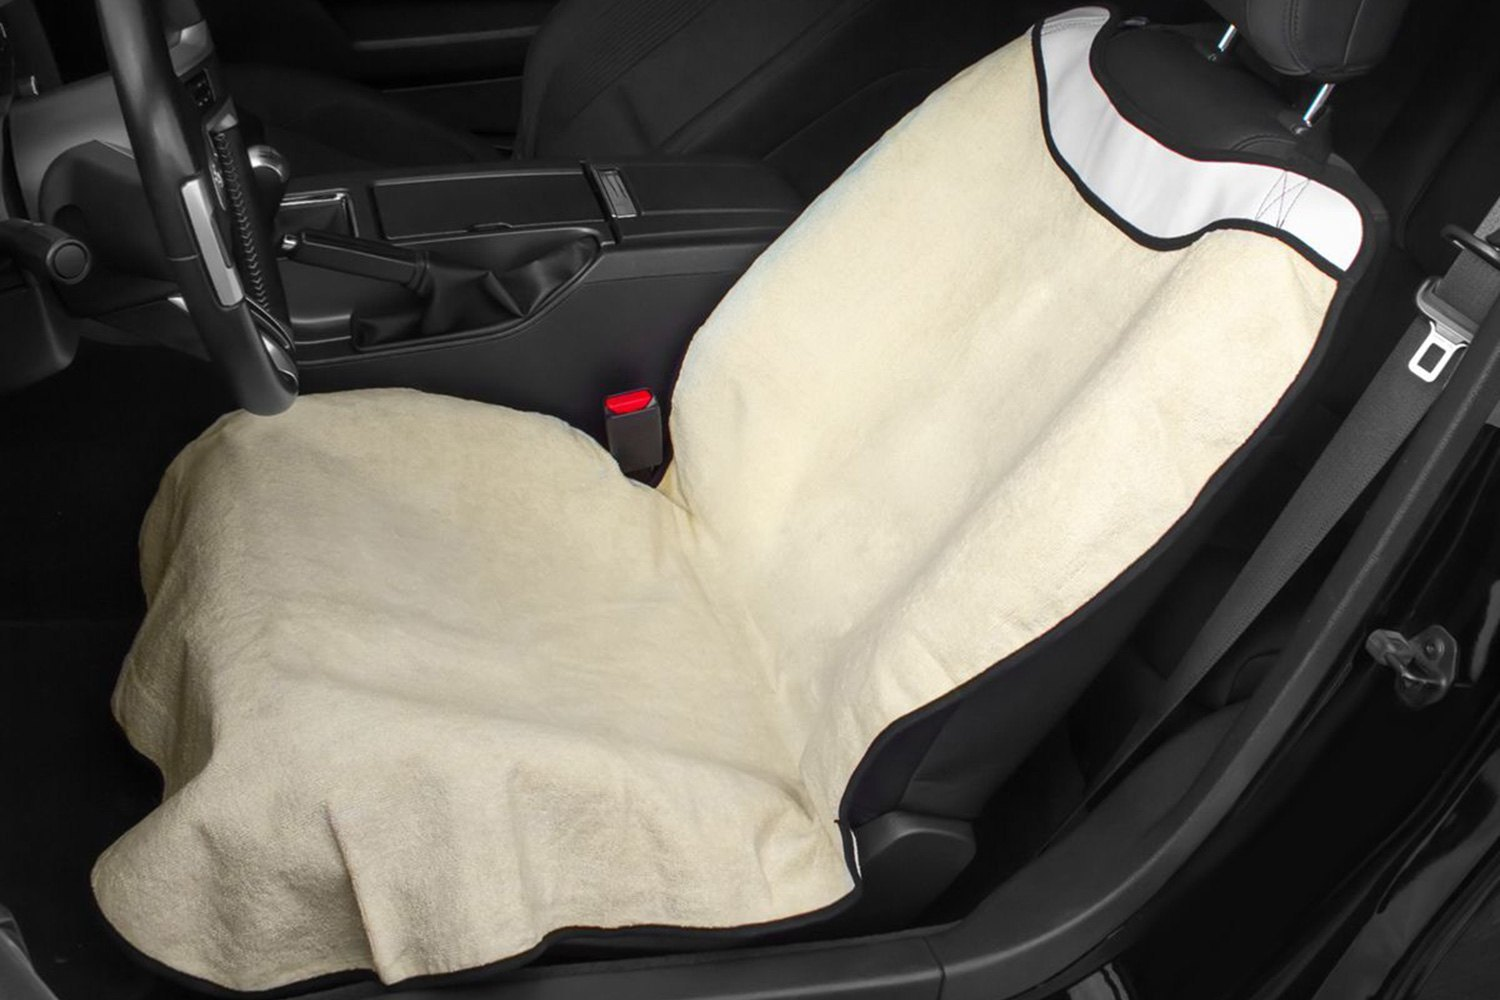 buy cheap OxGord® SCFS-S01F-BG - Sweat Towel Beige Seat Cover for 2015 RAM 1500 TRUCK Ebay & Amazon